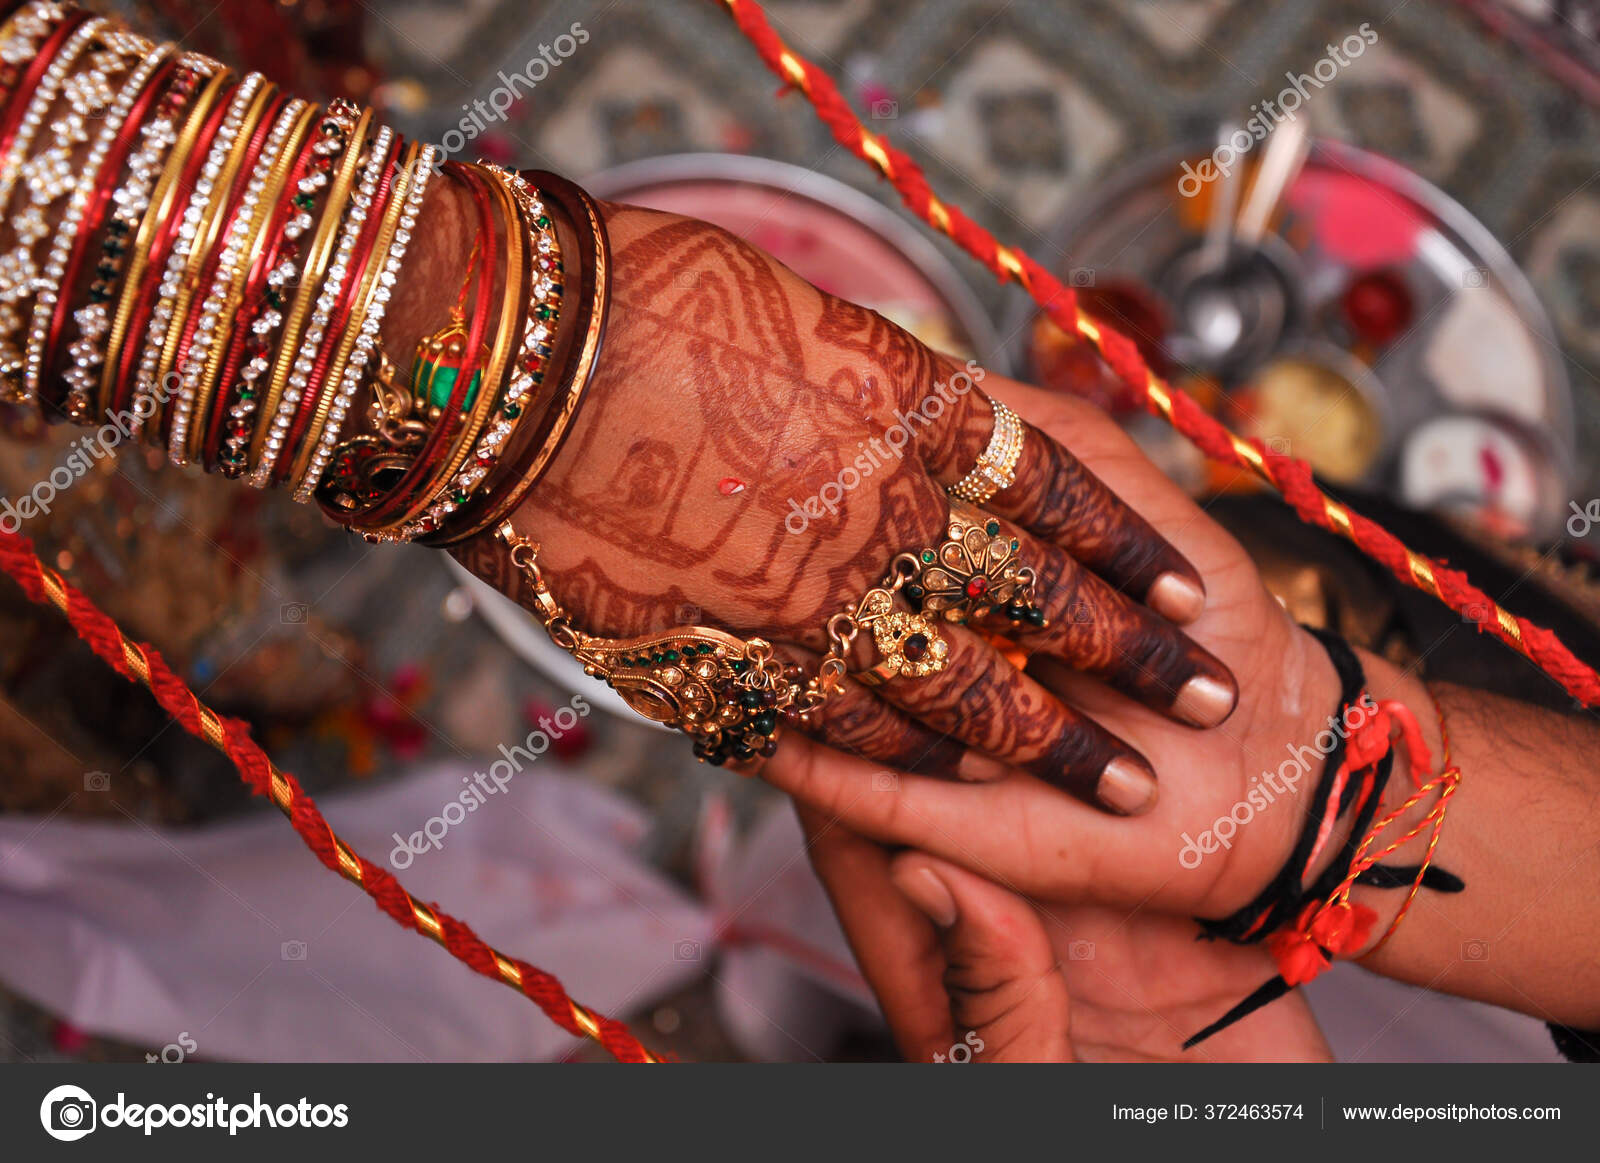 Áˆ Engagement Indian Stock Images Royalty Free Indian Couple Engagement Hands Pictures Download On Depositphotos Free vector icons in svg, psd, png, eps and icon font. https depositphotos com 372463574 stock photo indian couple hand hand wedding html